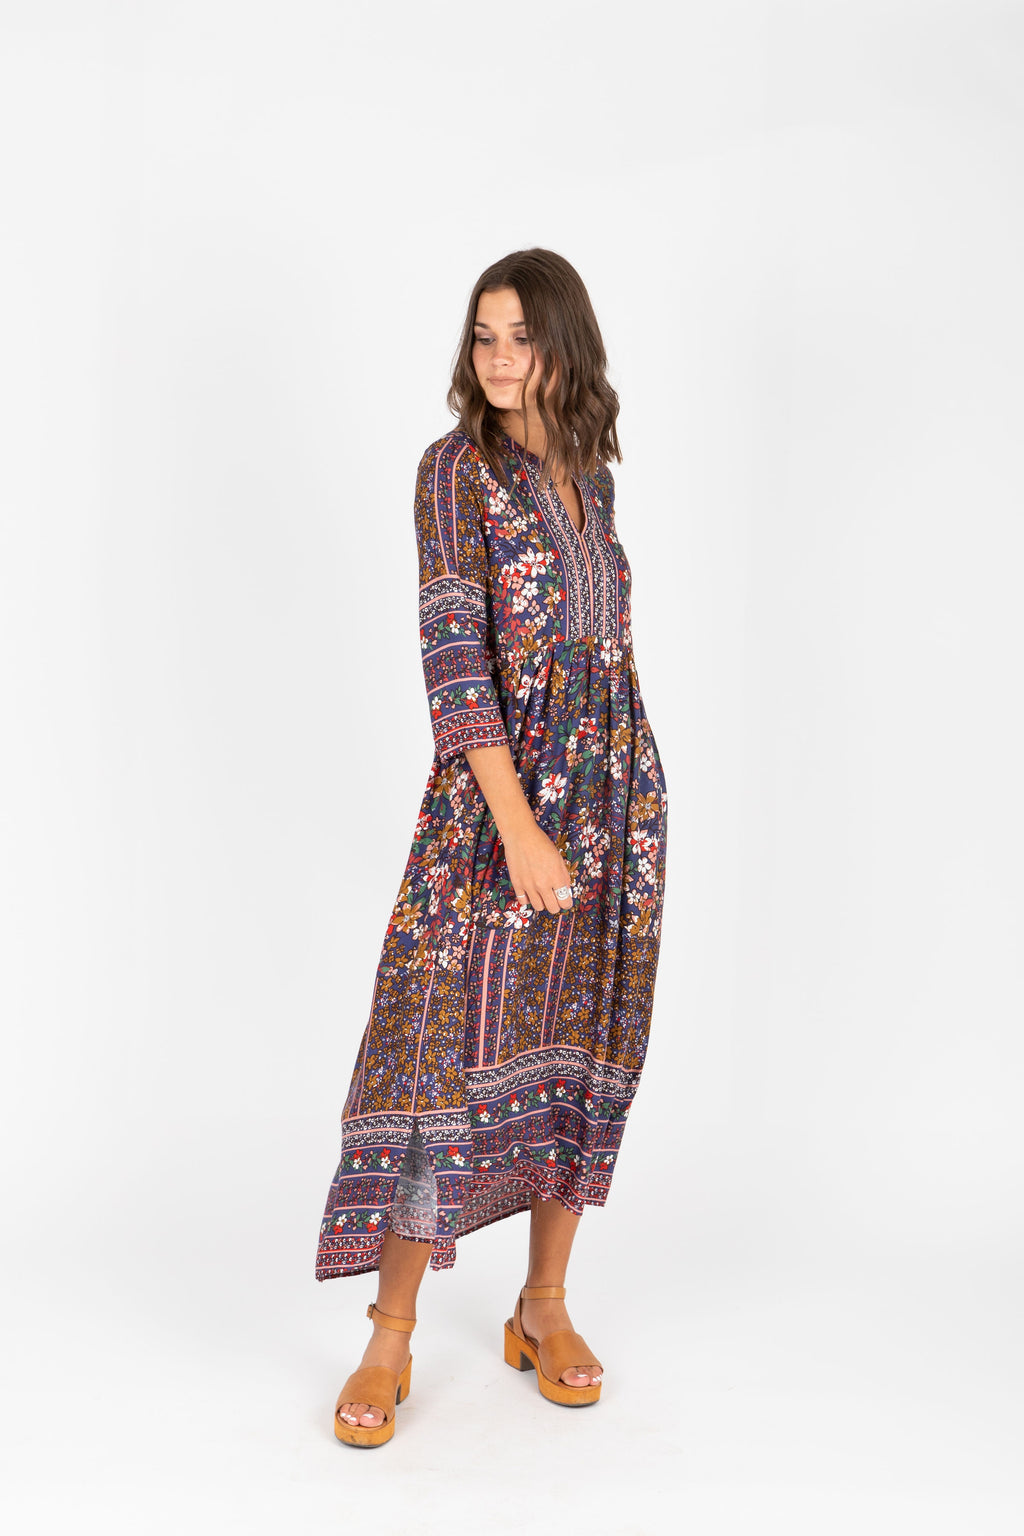 The Brockton Patterned Maxi Dress in Navy